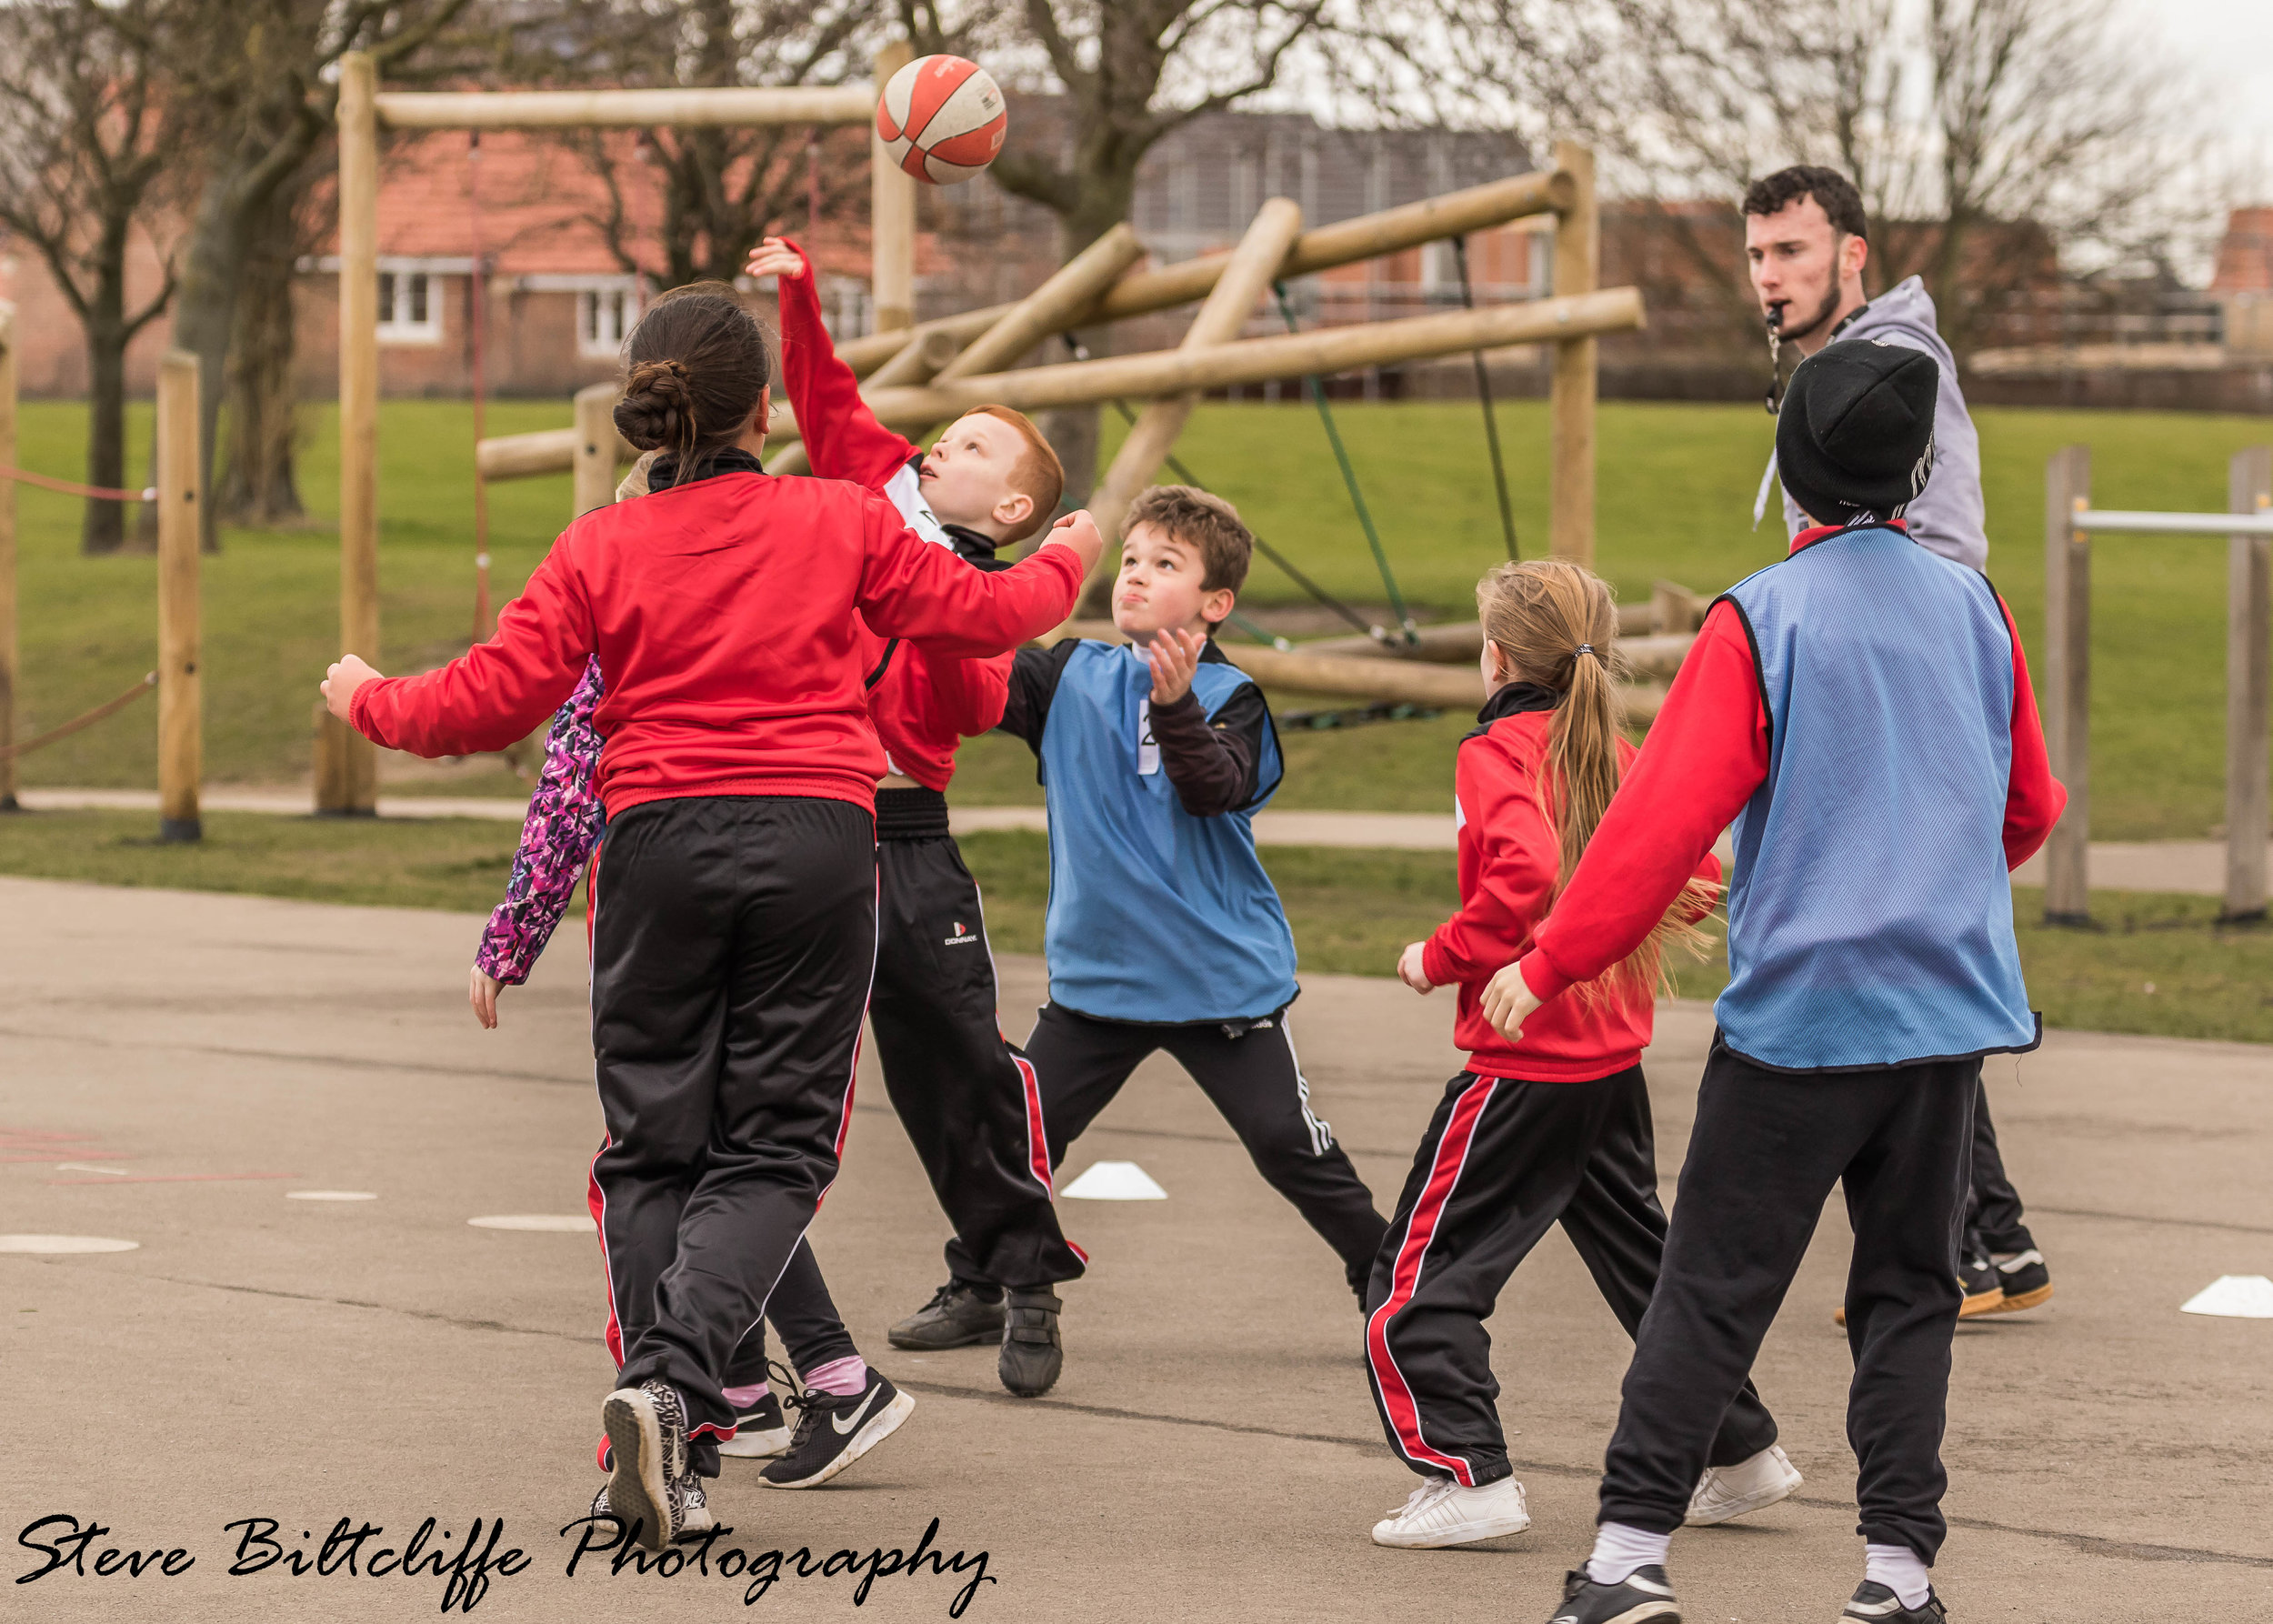 Korfball @ Cherry Tree Lane 2018